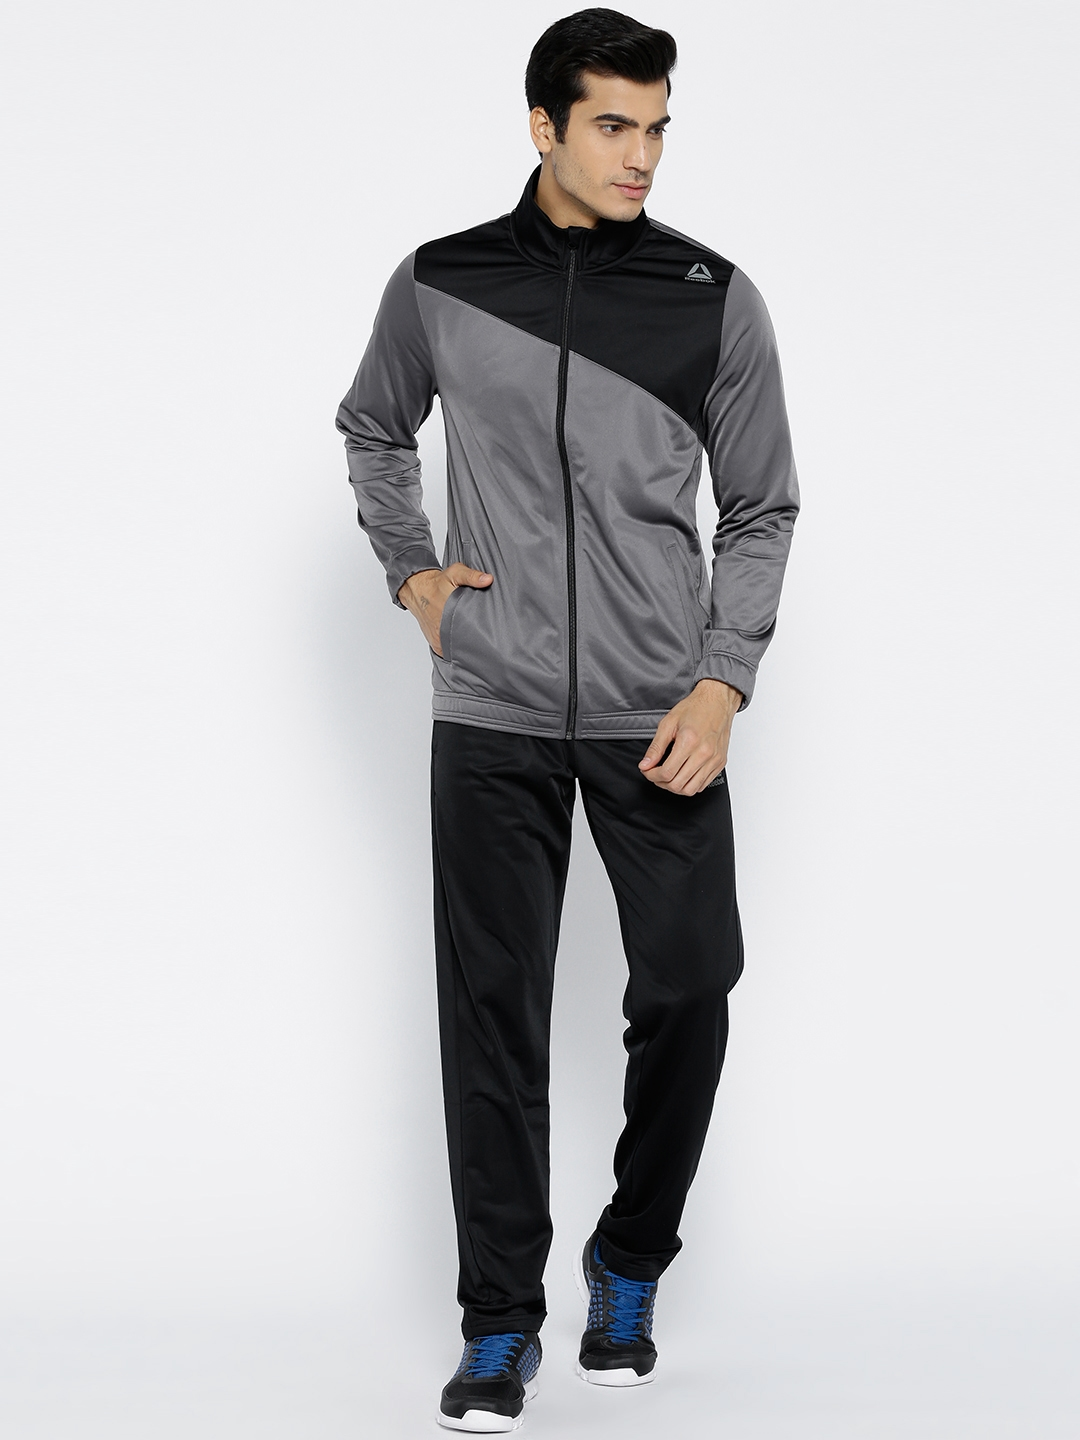 a99055884f61 Buy Reebok Grey   Black TRICOT Training Tracksuit - Tracksuits for ...